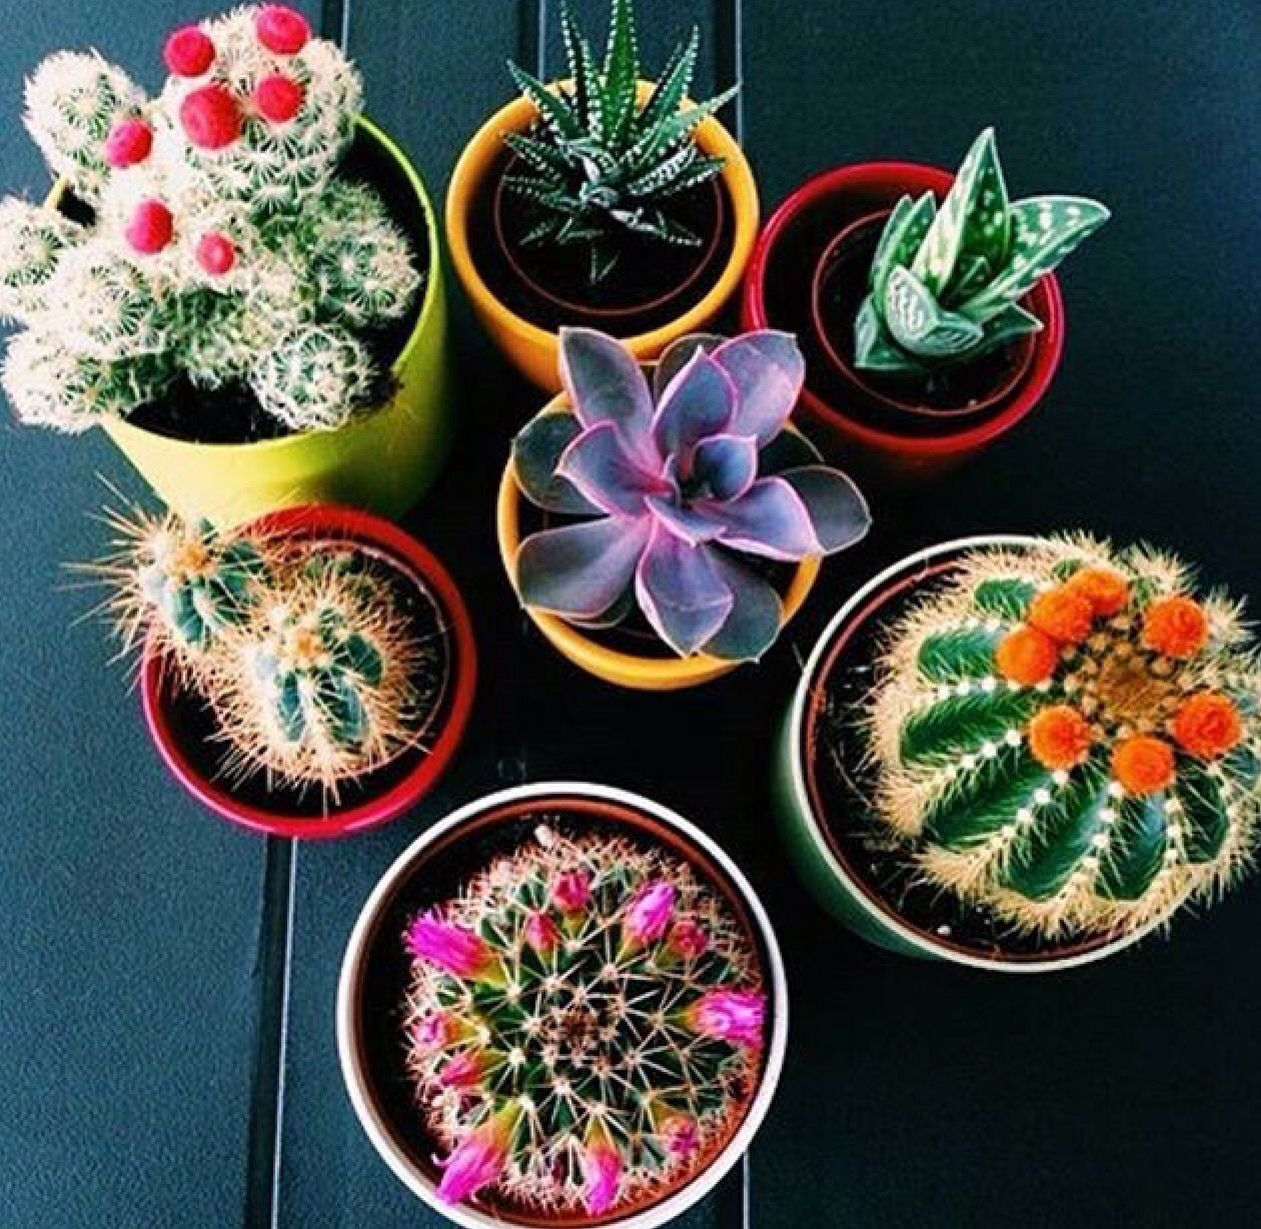 Cactus Decorated For Christmas: Pretty Cacti To Decorate Your Room